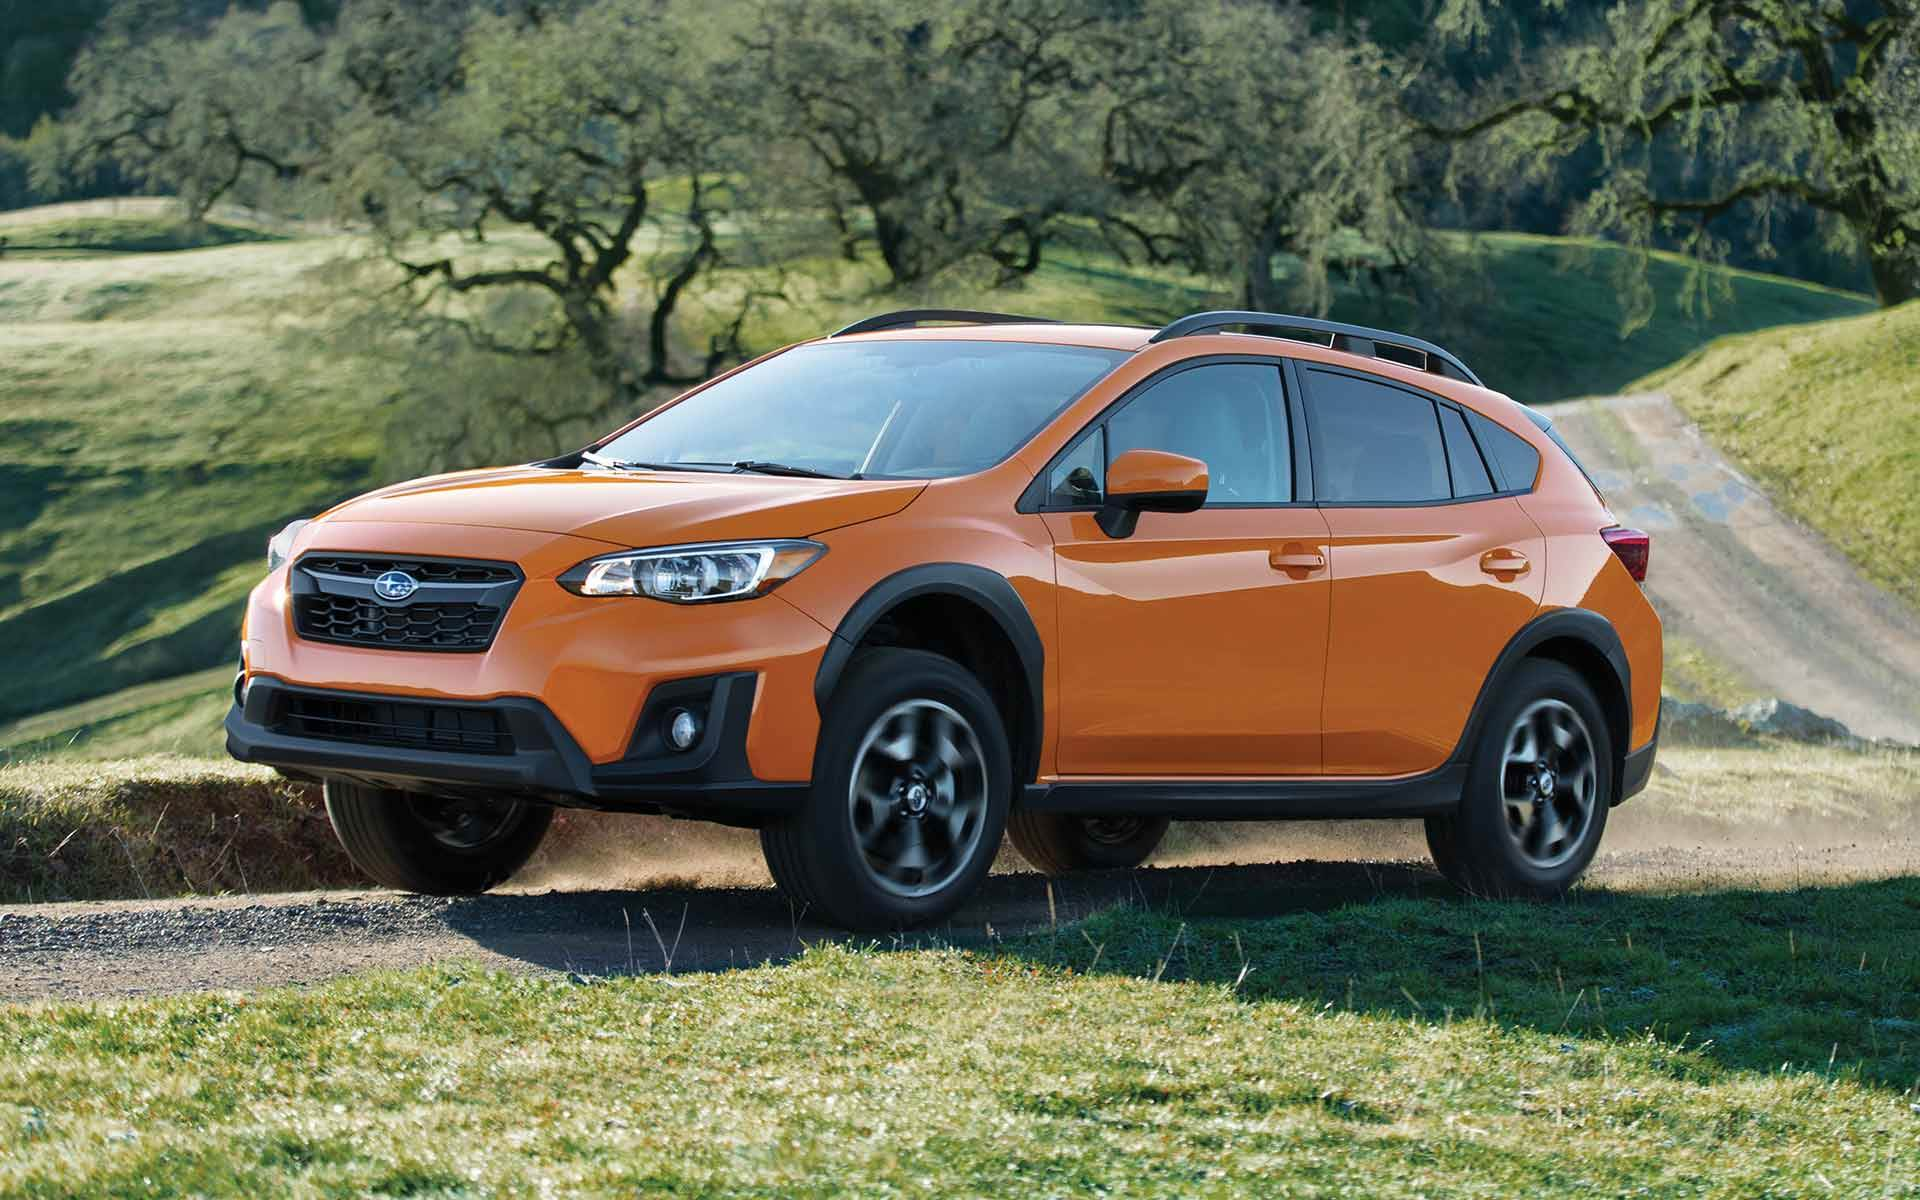 2018 Mitsubishi Eclipse Cross vs 2018 Subaru Crosstrek comparison